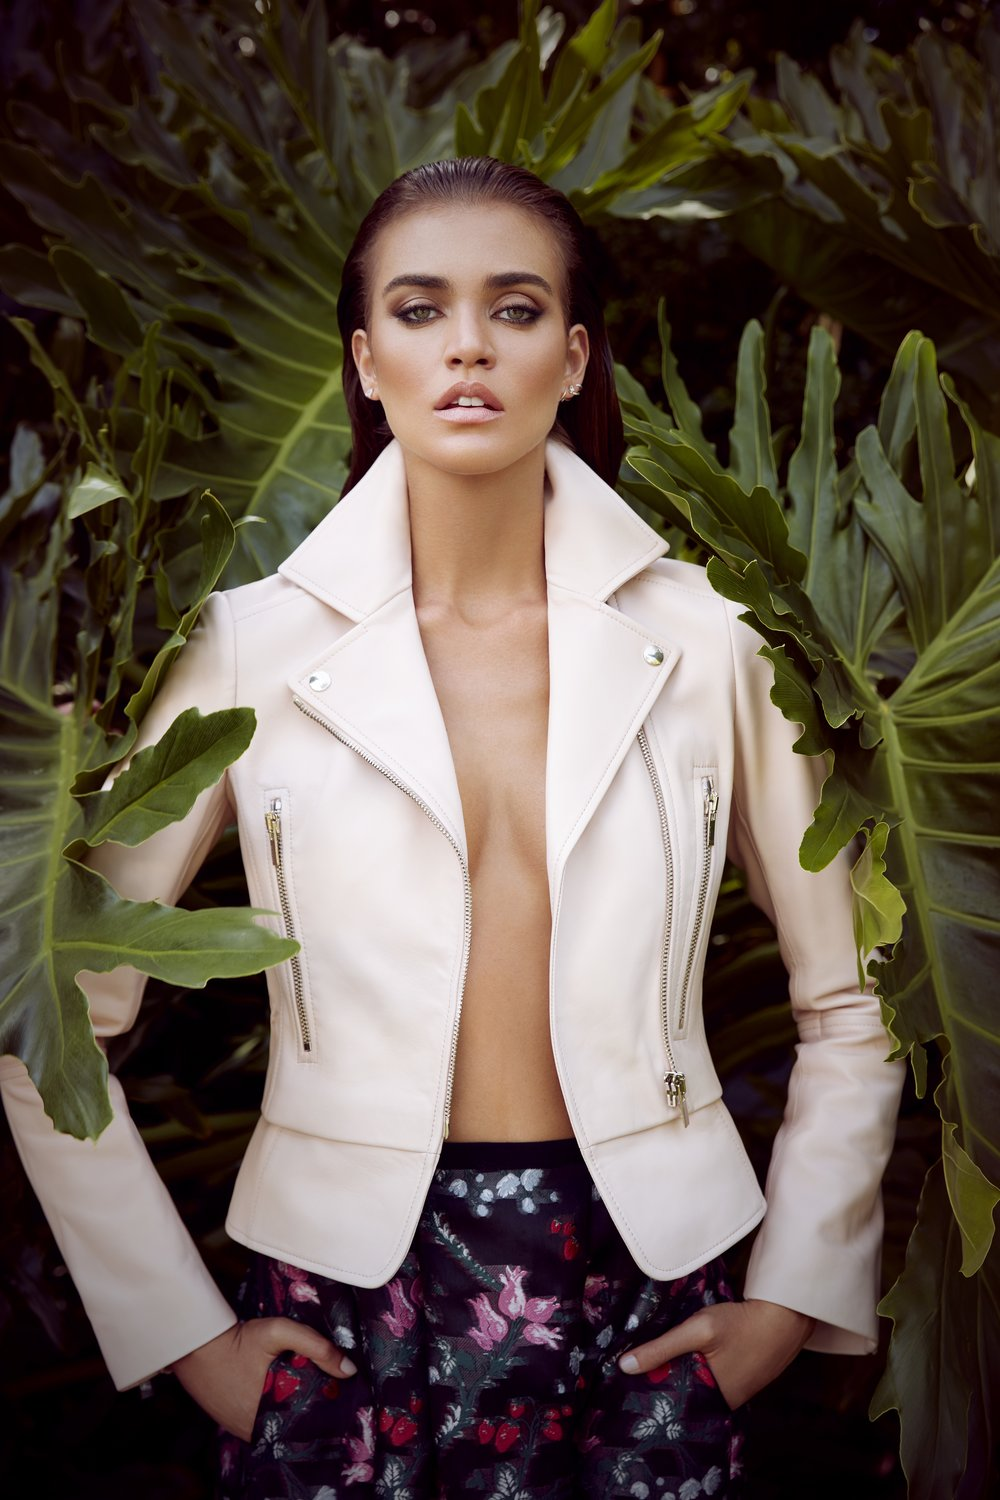 Tan brunette woman wearing open white leather jacket standing in front of large plant leaves - Mark DeLong: Fashion Gallery